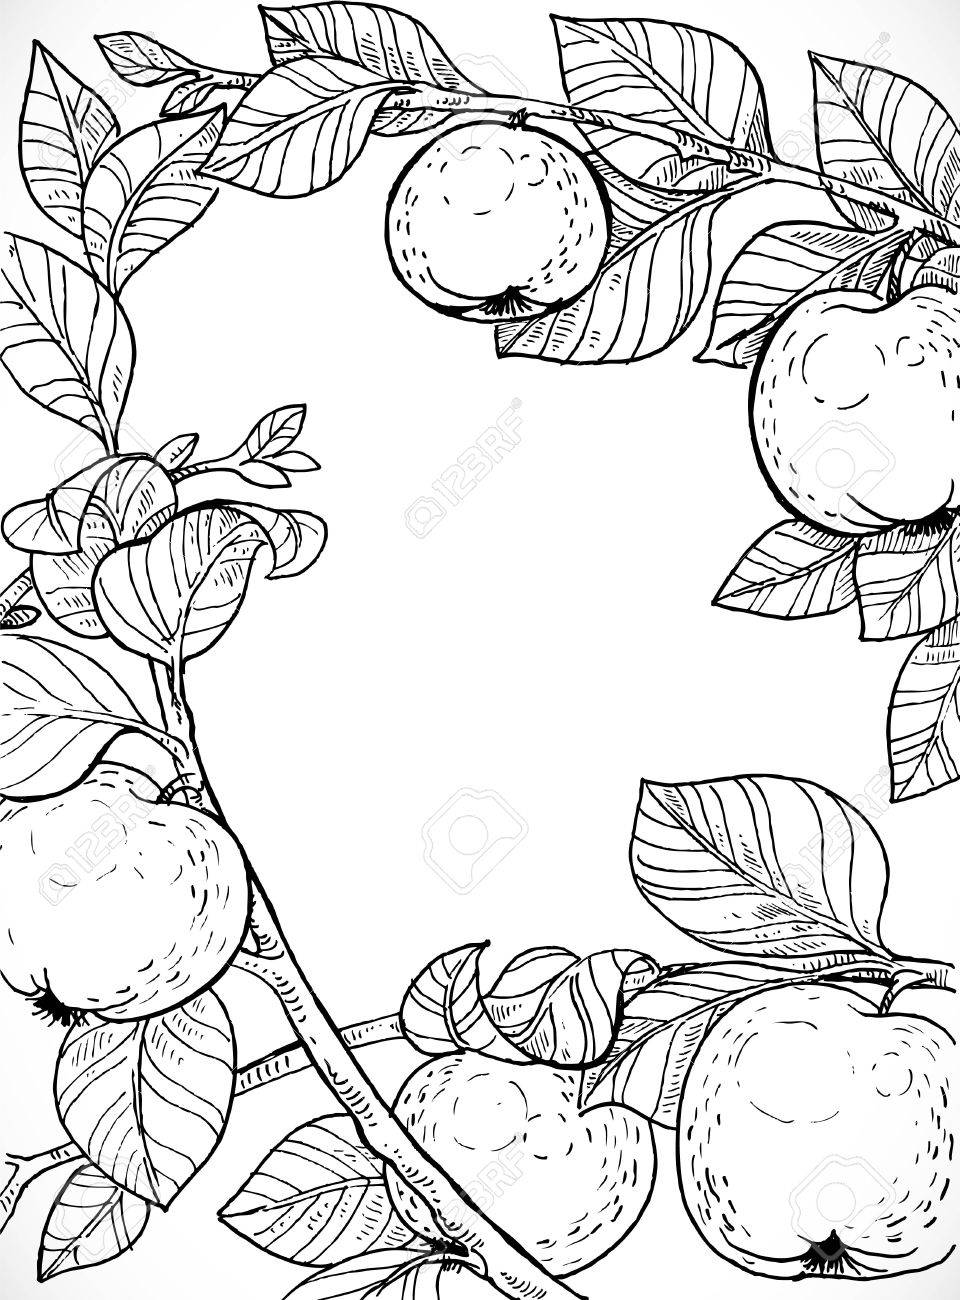 960x1300 Black And White Drawing Of Branches With Apples And Leaves Royalty